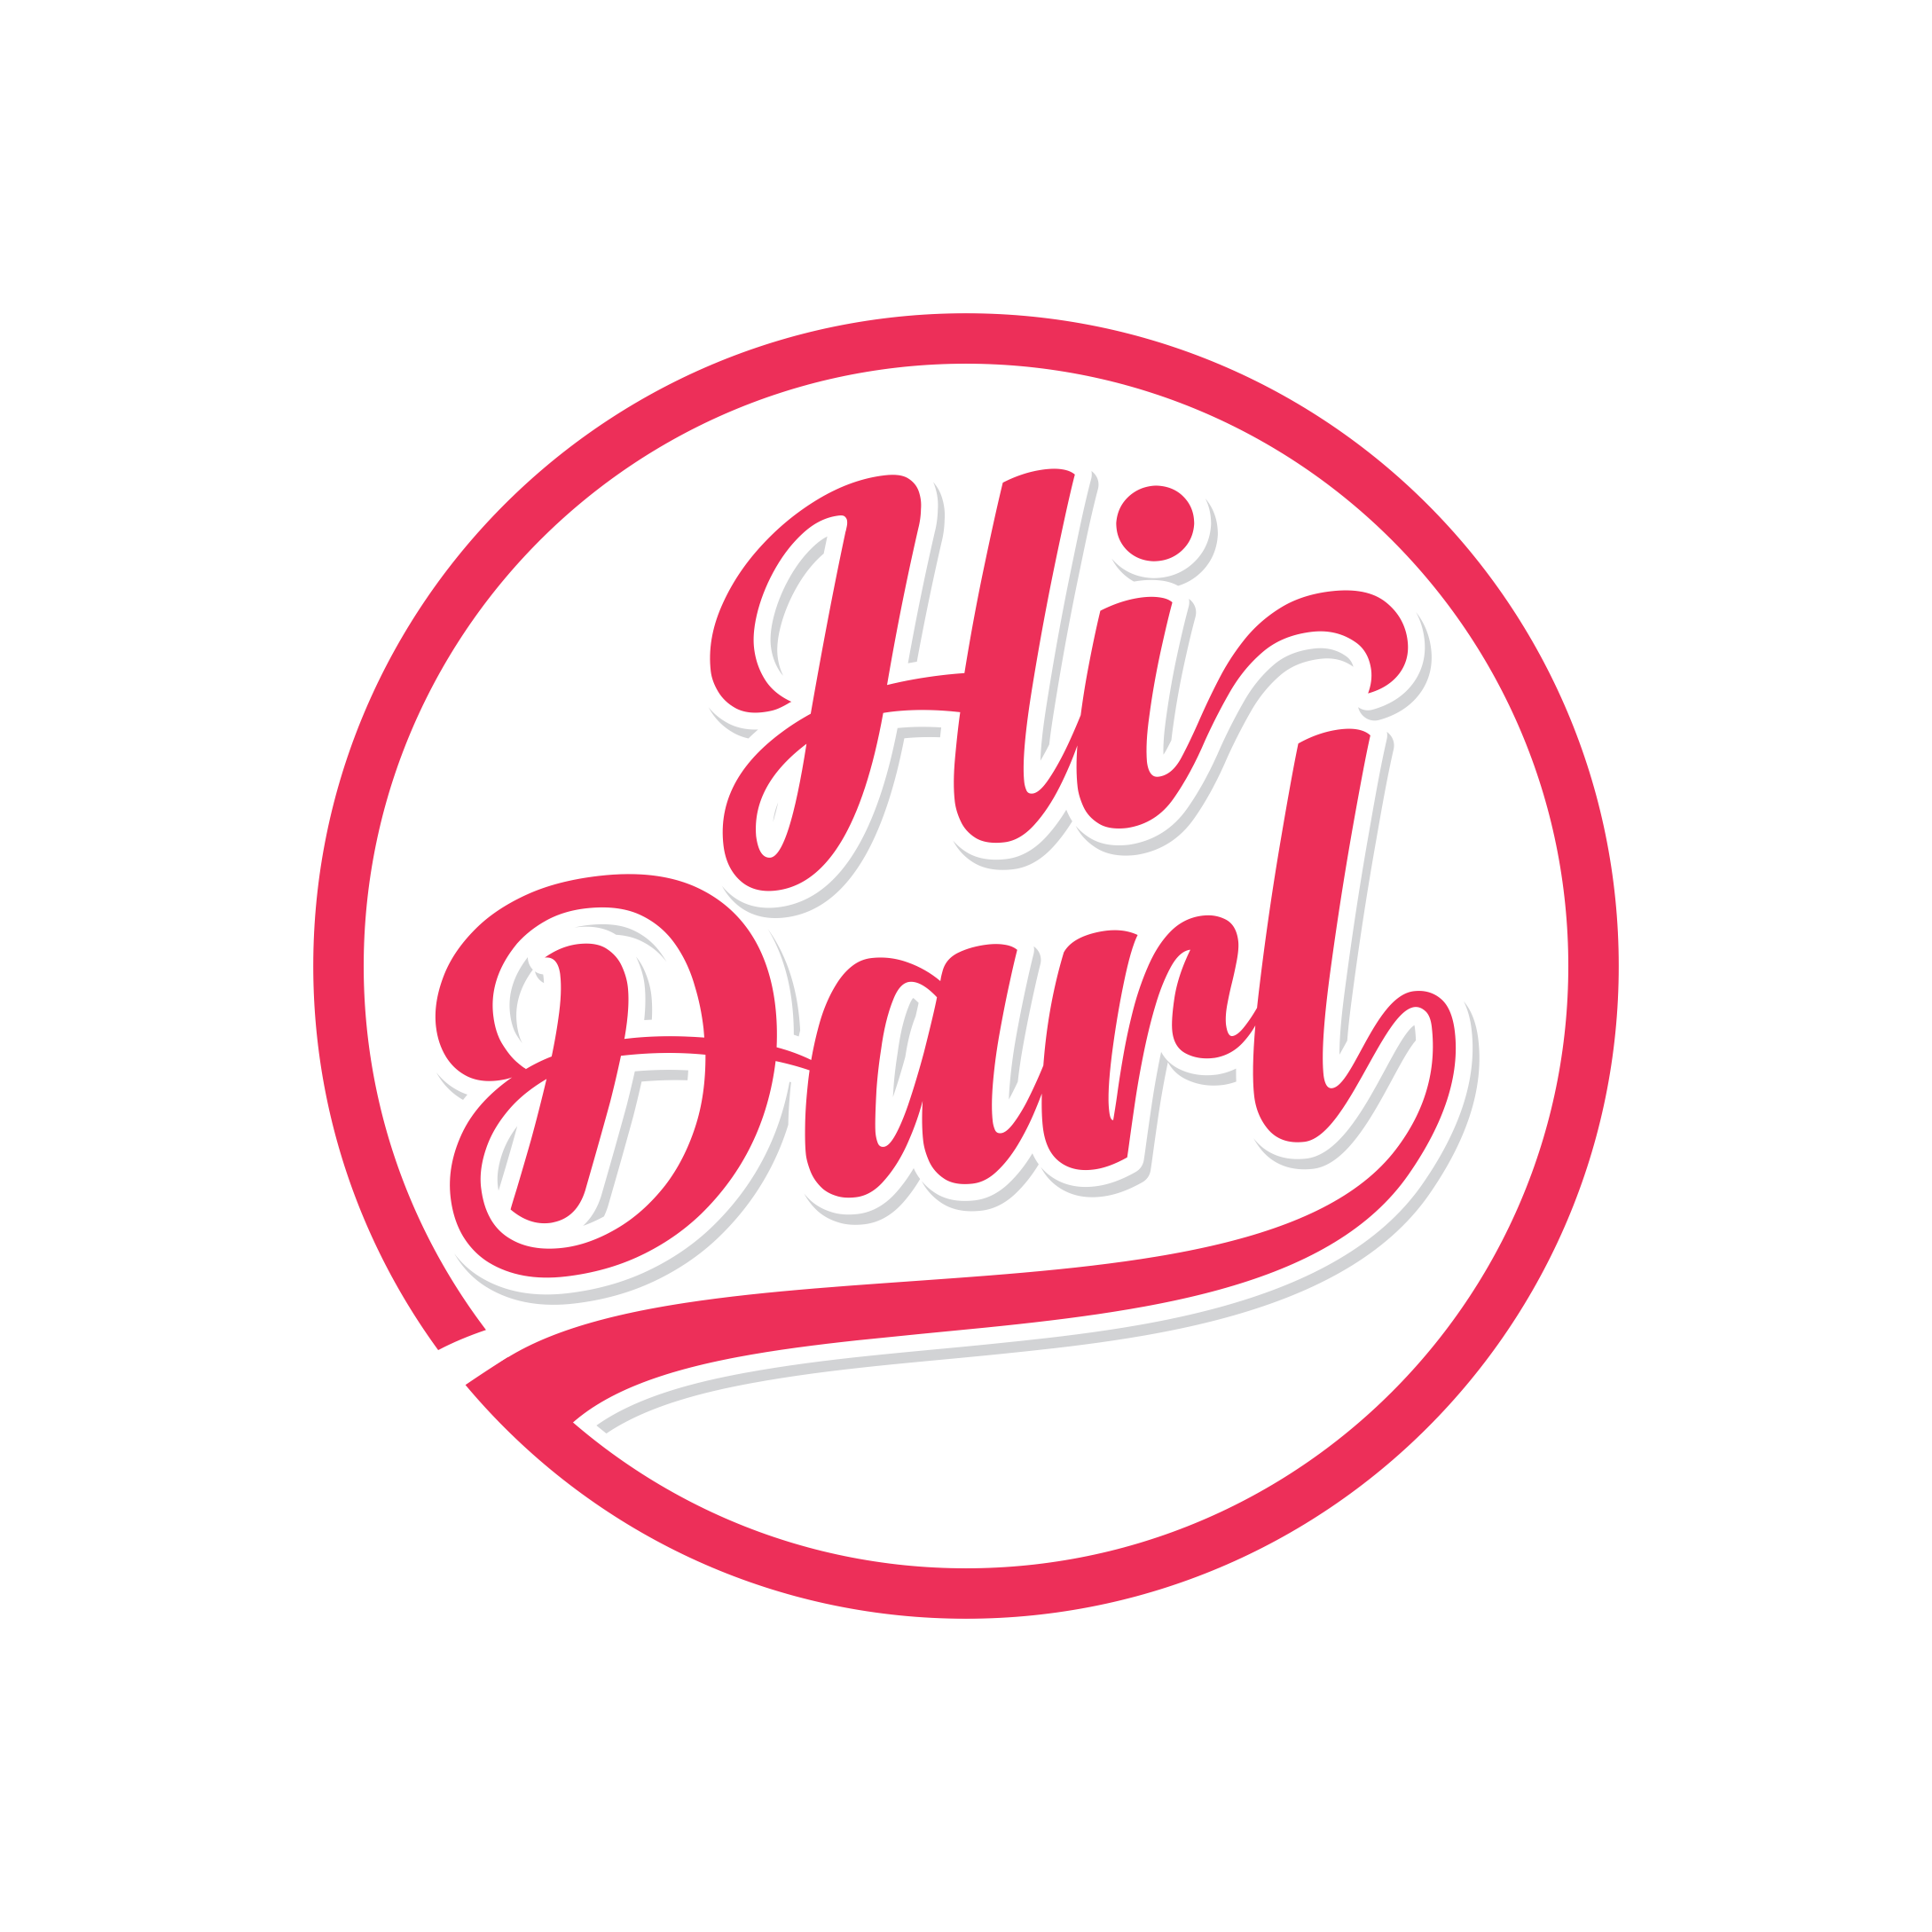 Be a darling and create the ultimate 'Hi Darl' logo for merch & clothing in a rockabilly town